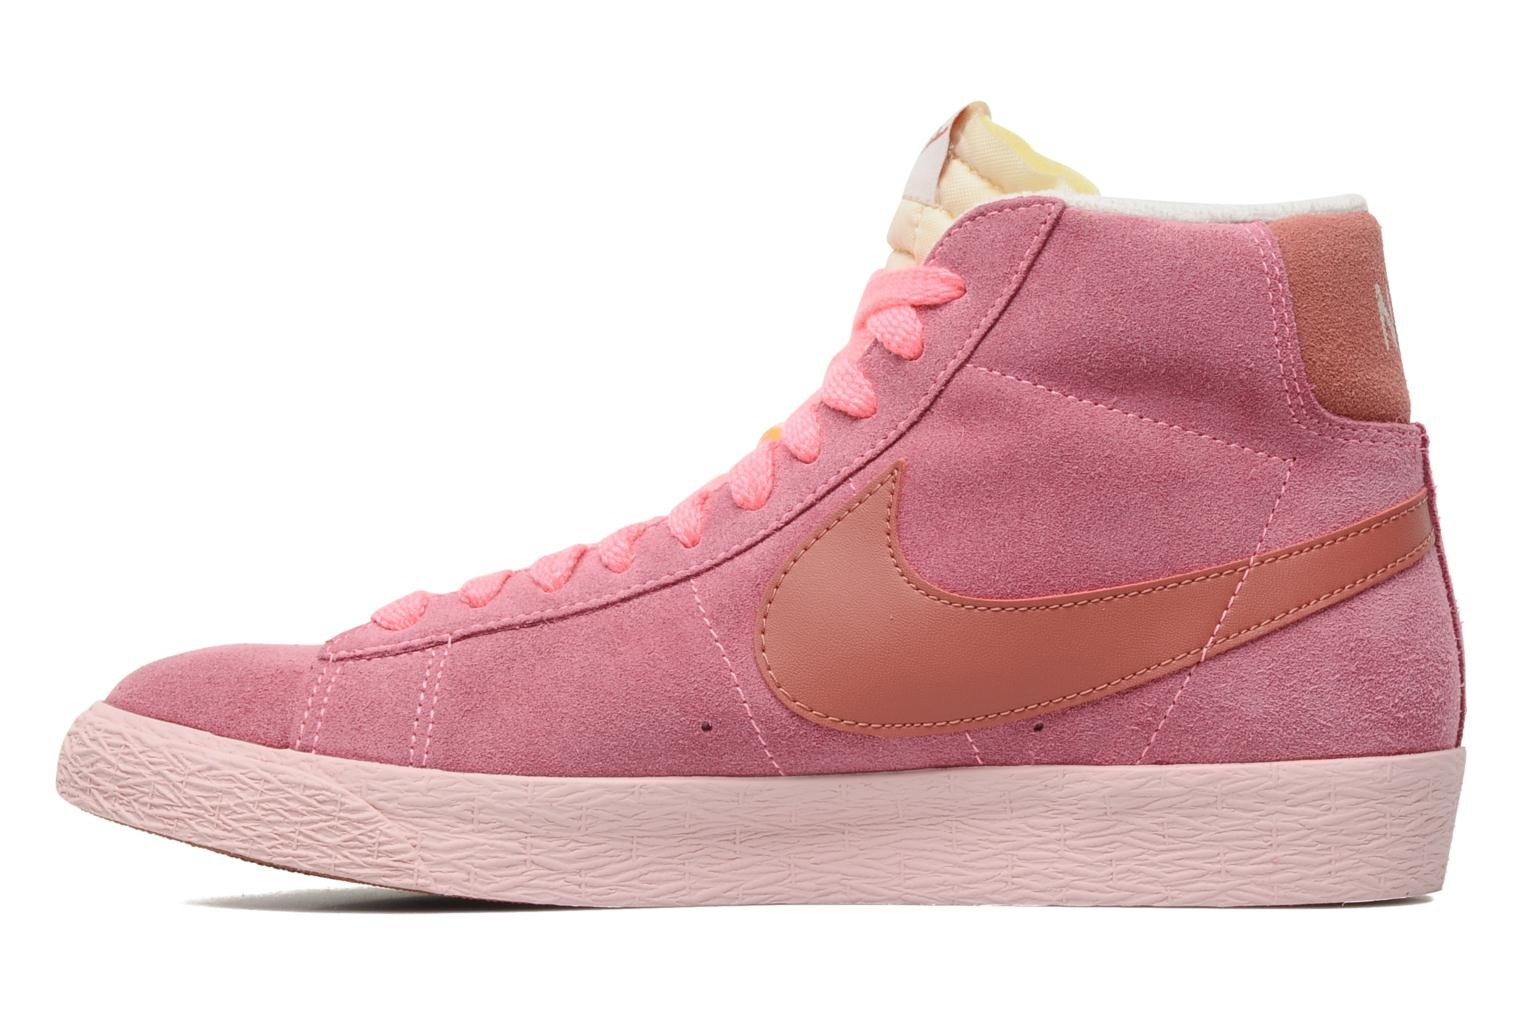 Nike WMNS Blazer Mid Suede Vintage Polarized Pink Light Redwood Sail Pink Glaze Womens High Top Sneakers